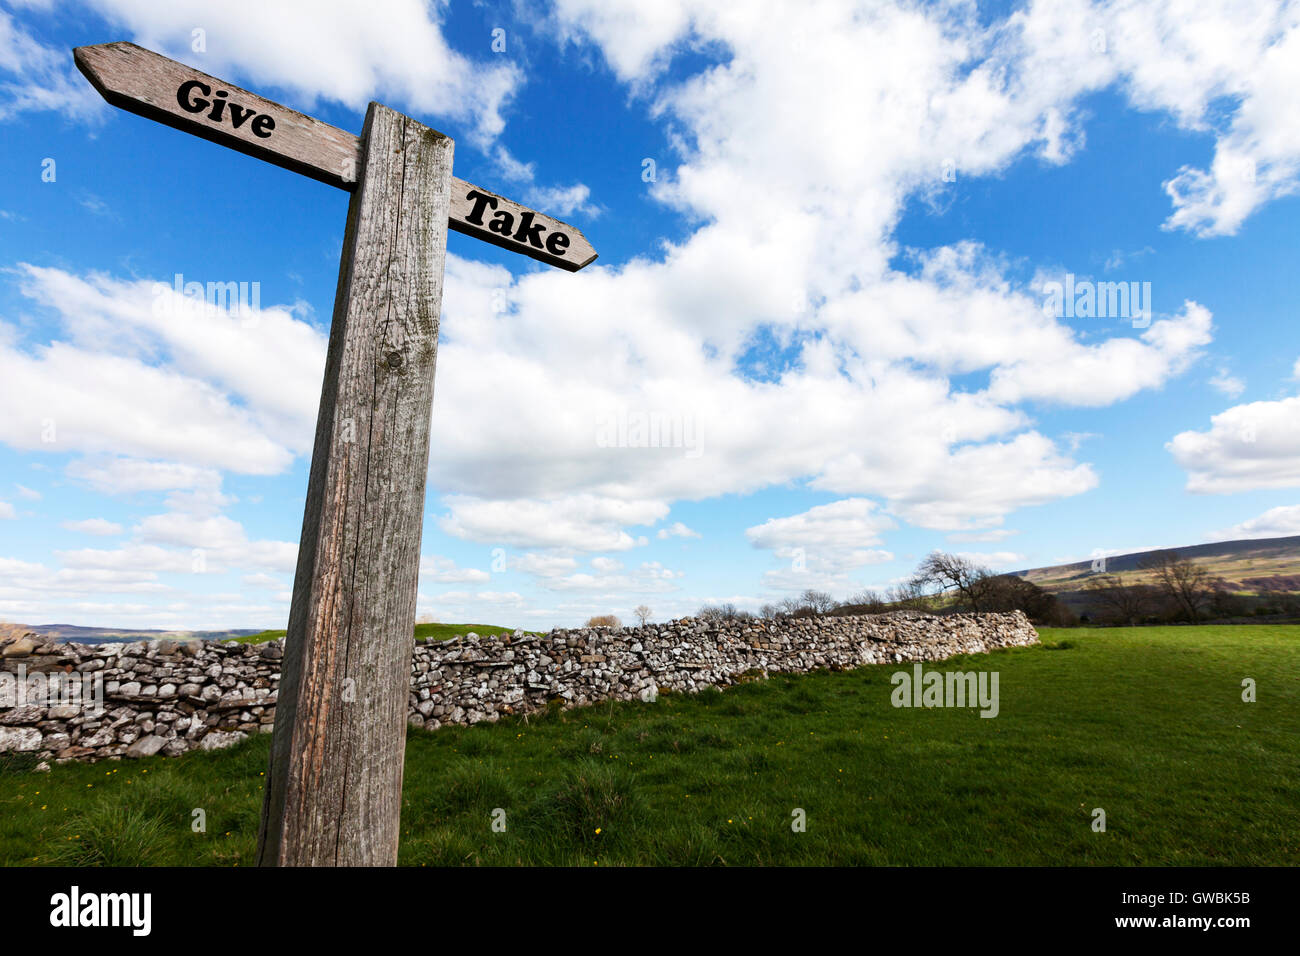 Give take sign words life signs fair fairness forgiveness motivation concept direction choice choose antonyms antonym - Stock Image